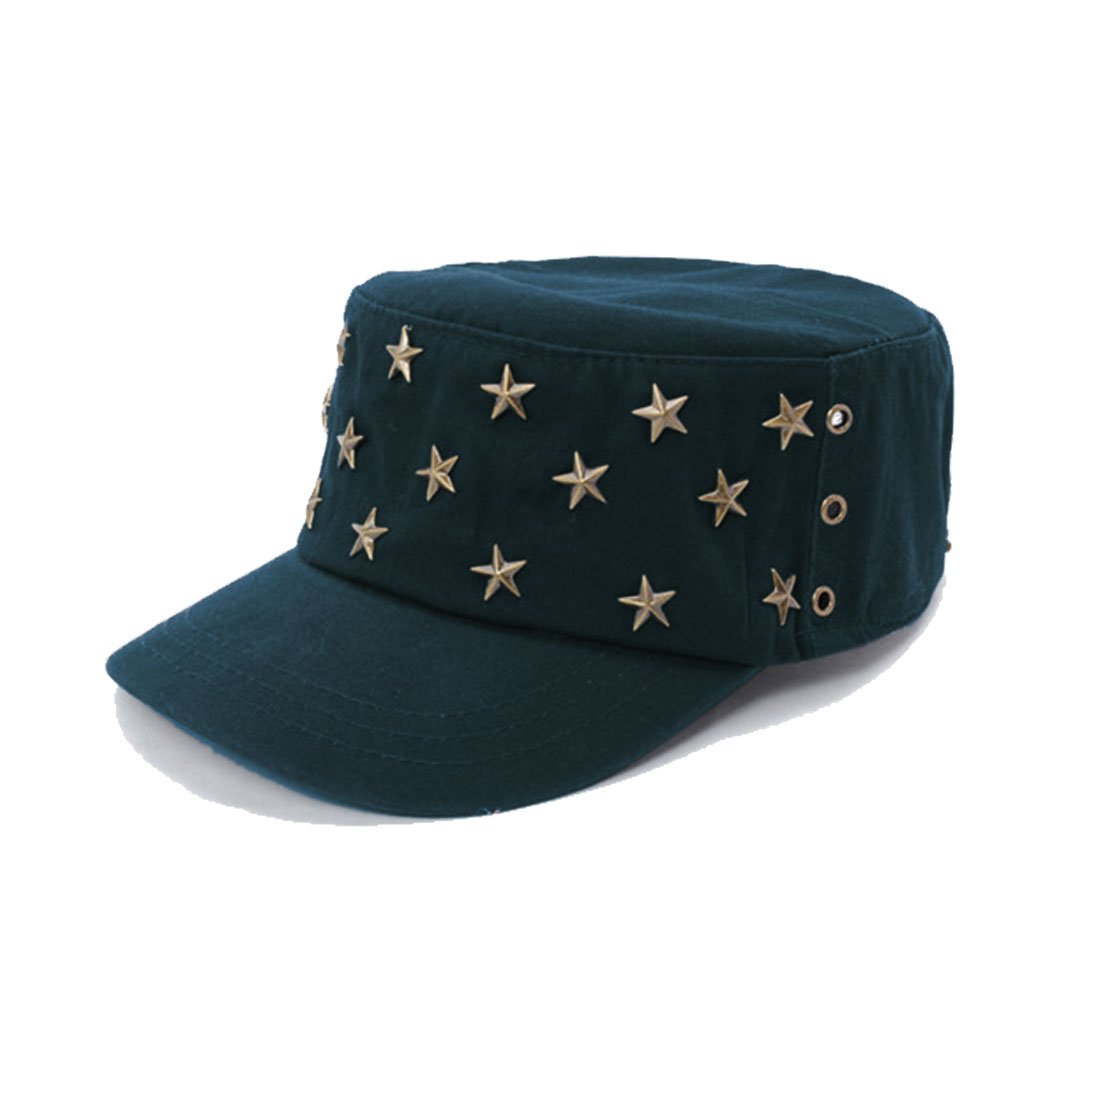 Unisex Dark Blue Gold Tone Metal Stars Decor Buttoned Band Cap